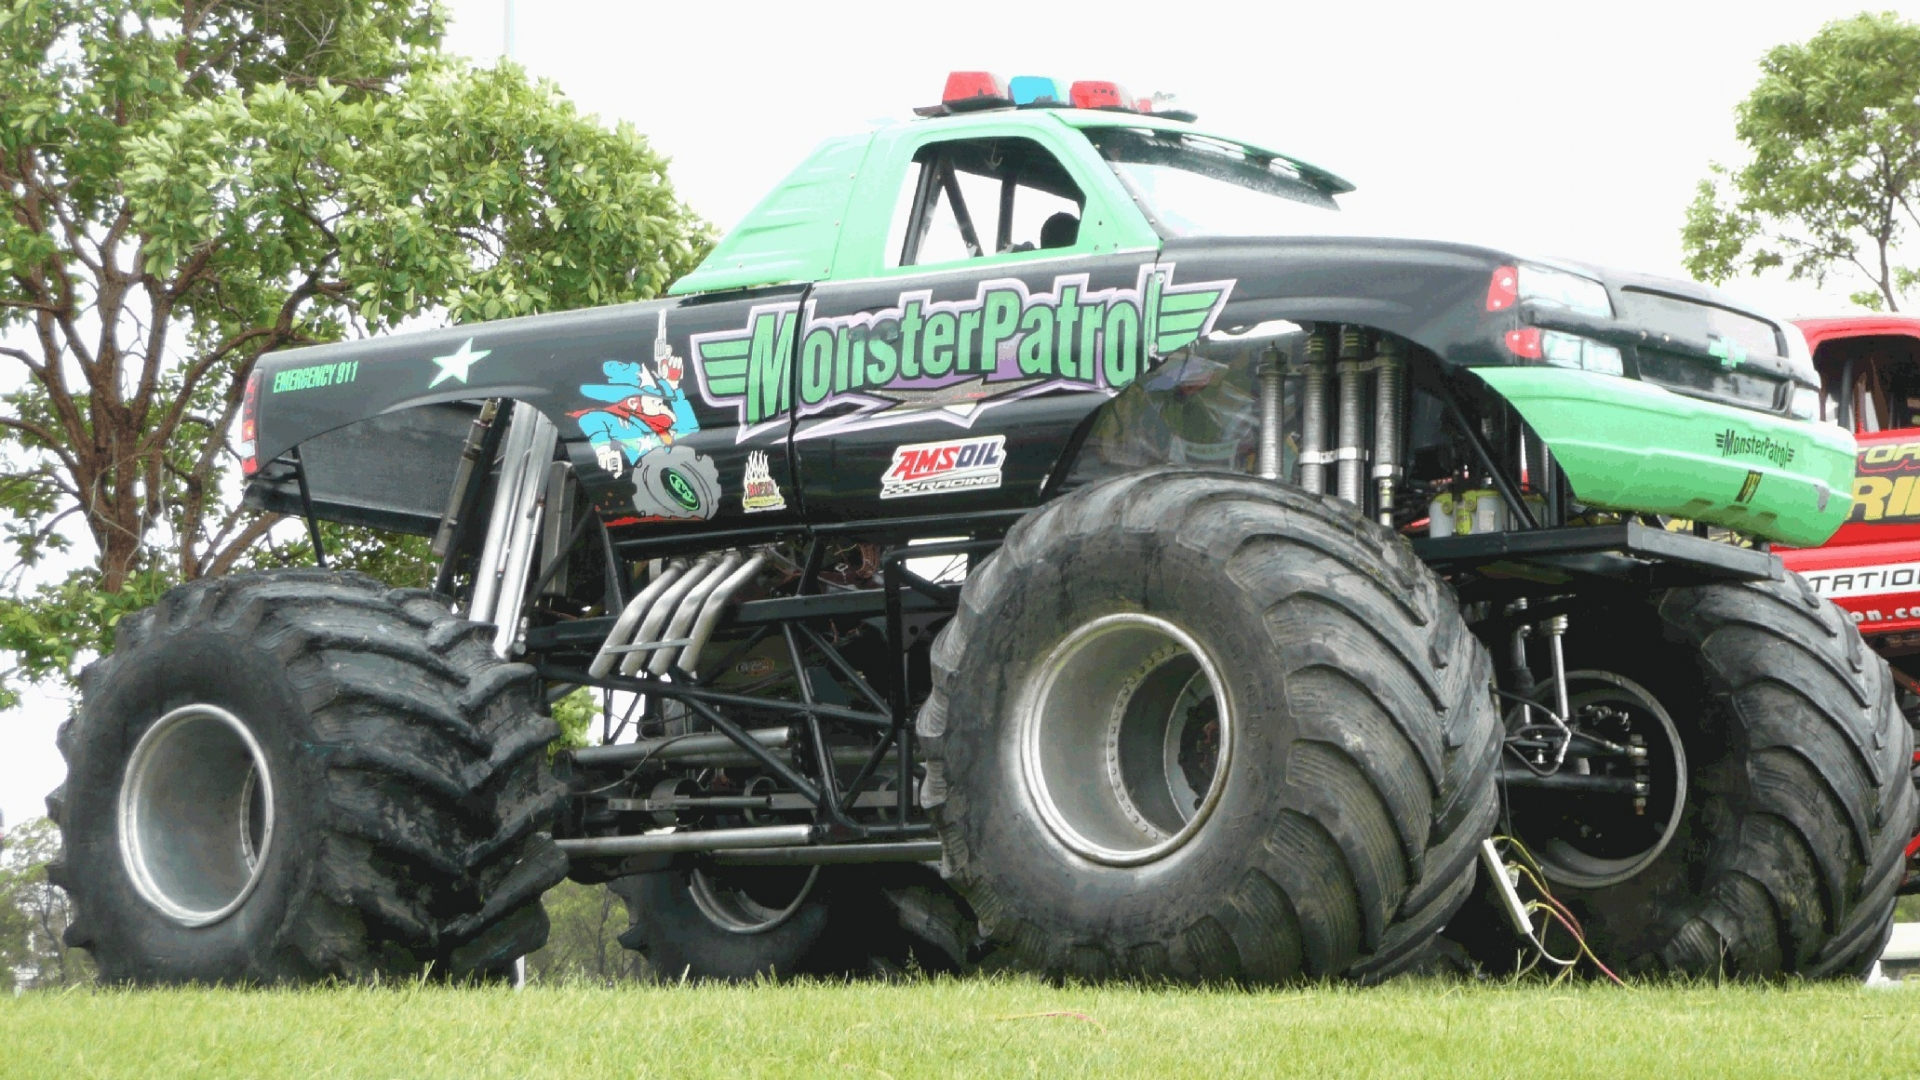 Monster Truck Wallpaper Monster Truck 286090 Hd Wallpaper Backgrounds Download